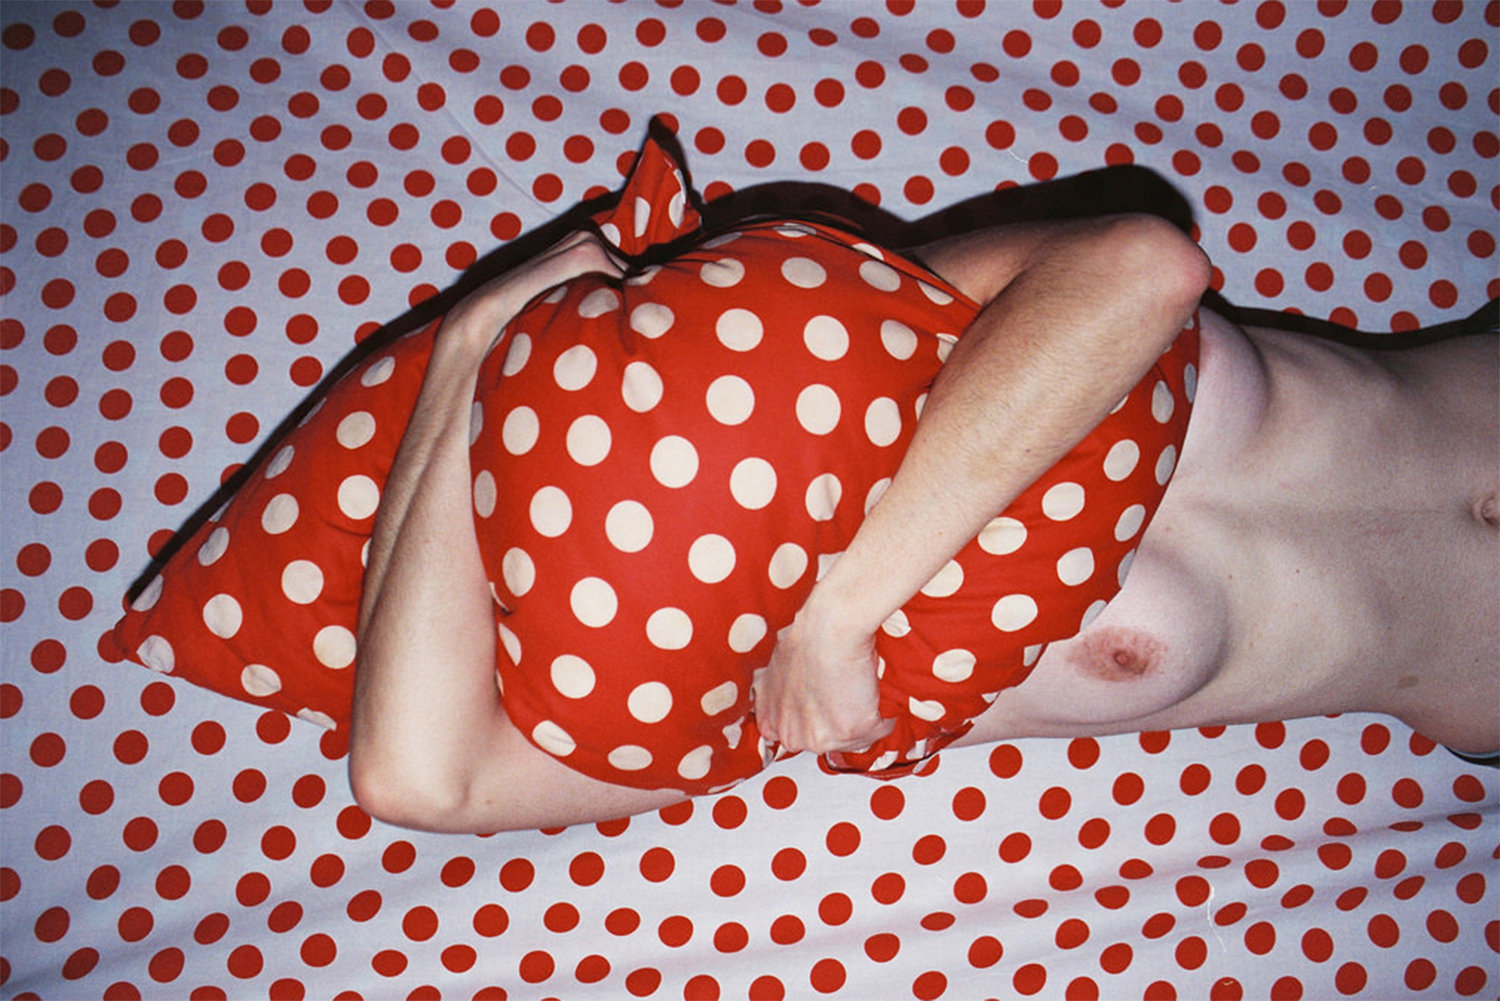 polka dots, red and white, pillow, by Lukasz Wierzbowski